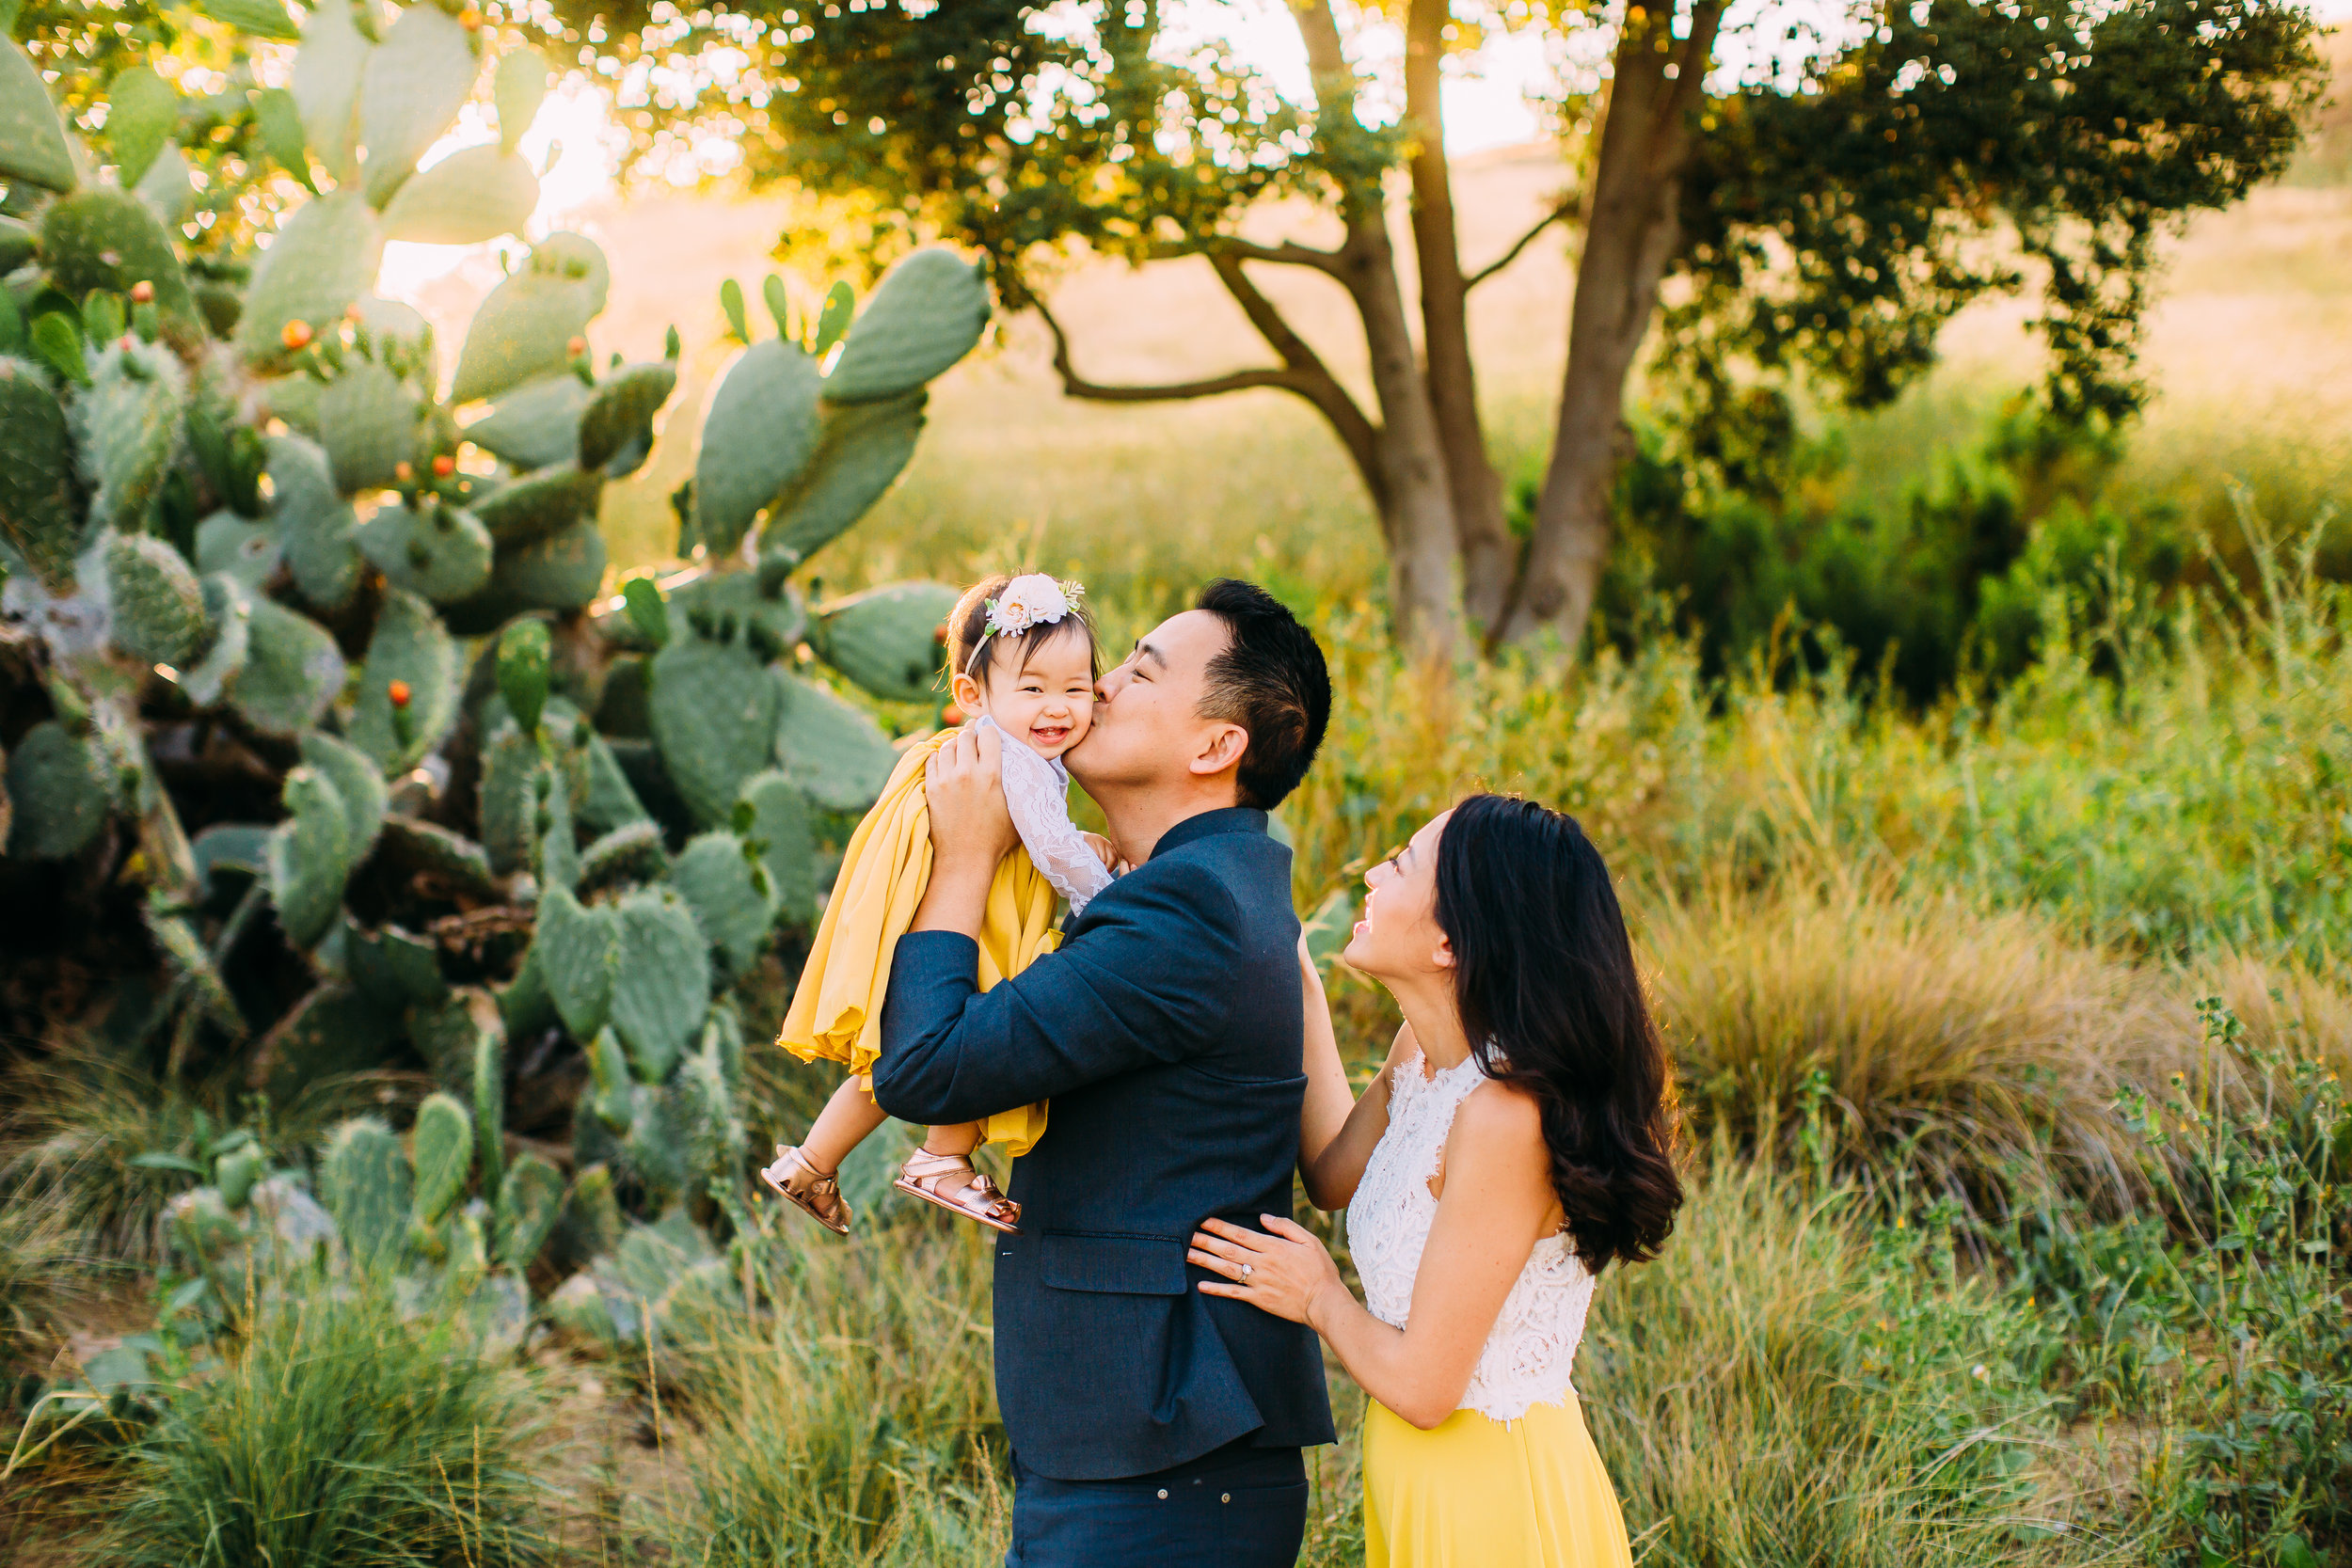 rustic family photo session in Irvine, CA